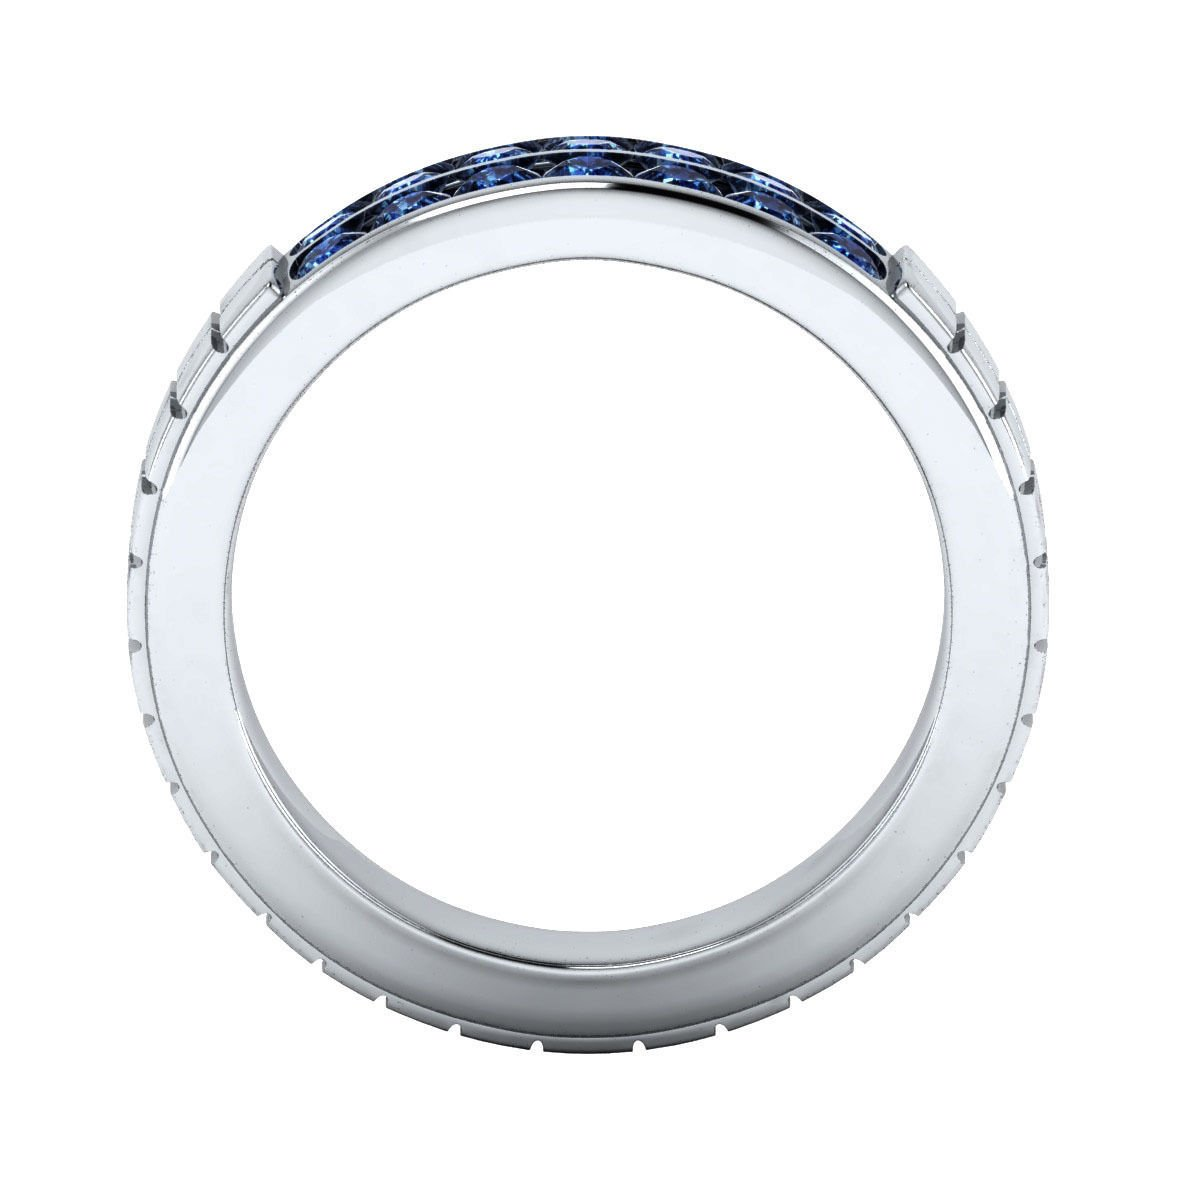 tusakha 0.84 ct Round Cut Blue Sapphire 14K White Gold Plated Wedding Band Ring For Mens